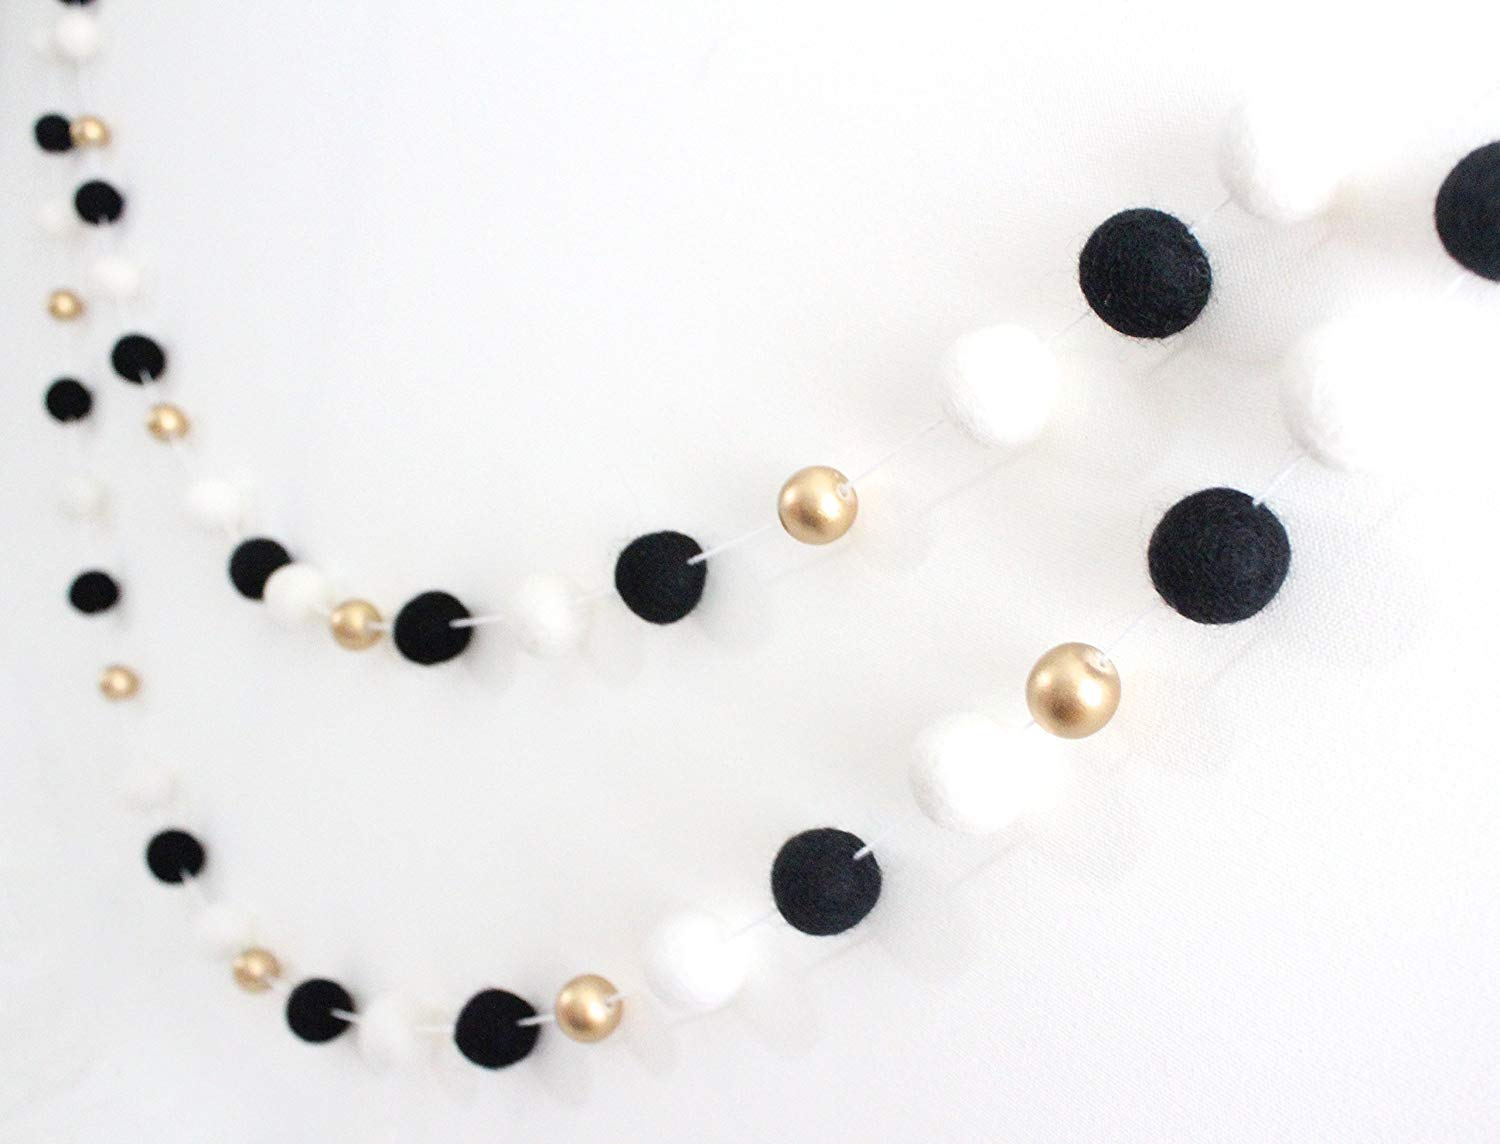 """Monochrome & Gold"" Handmade Felt Ball Garland by Sheep Farm Felt- Black White and Gold Pom Pom Garland, Wool and Wood Felt Ball Metallic garland. 2.5 cm balls."